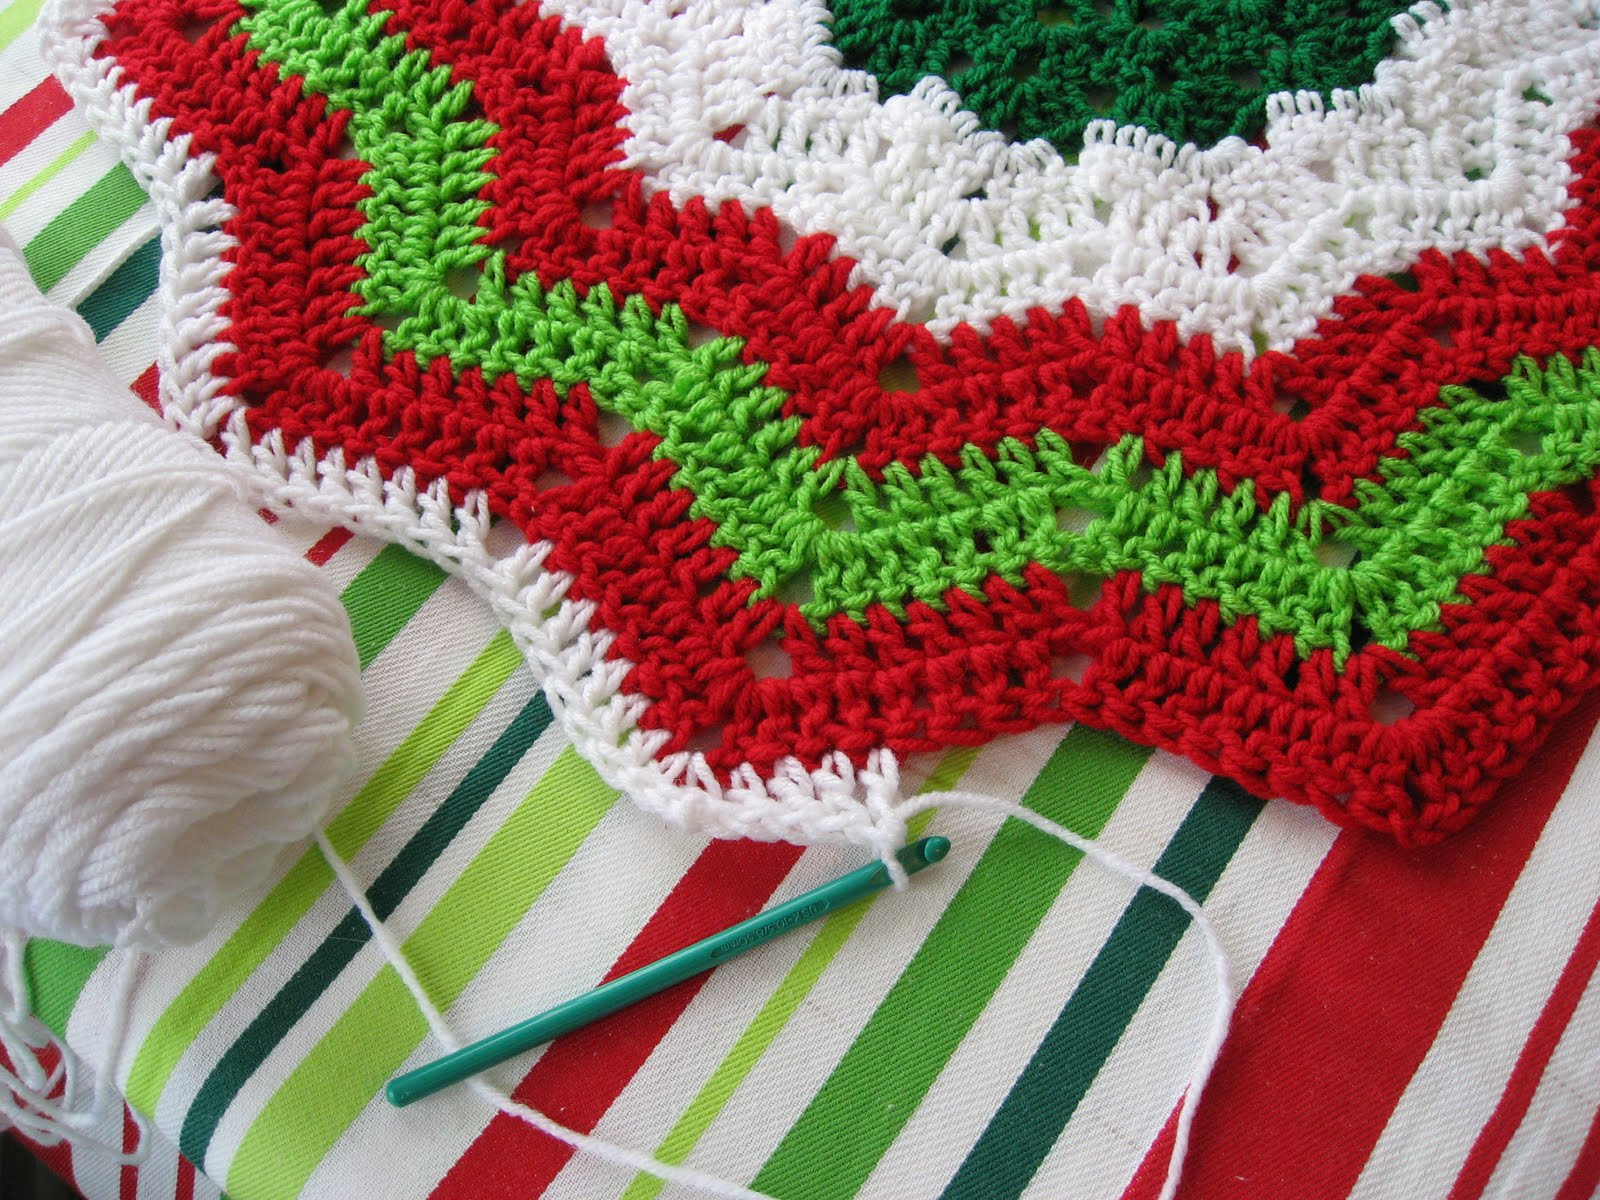 Crochet Xmas Tree Skirt : CHRISTMAS CROCHET SKIRT TREE - Crochet - Learn How to Crochet